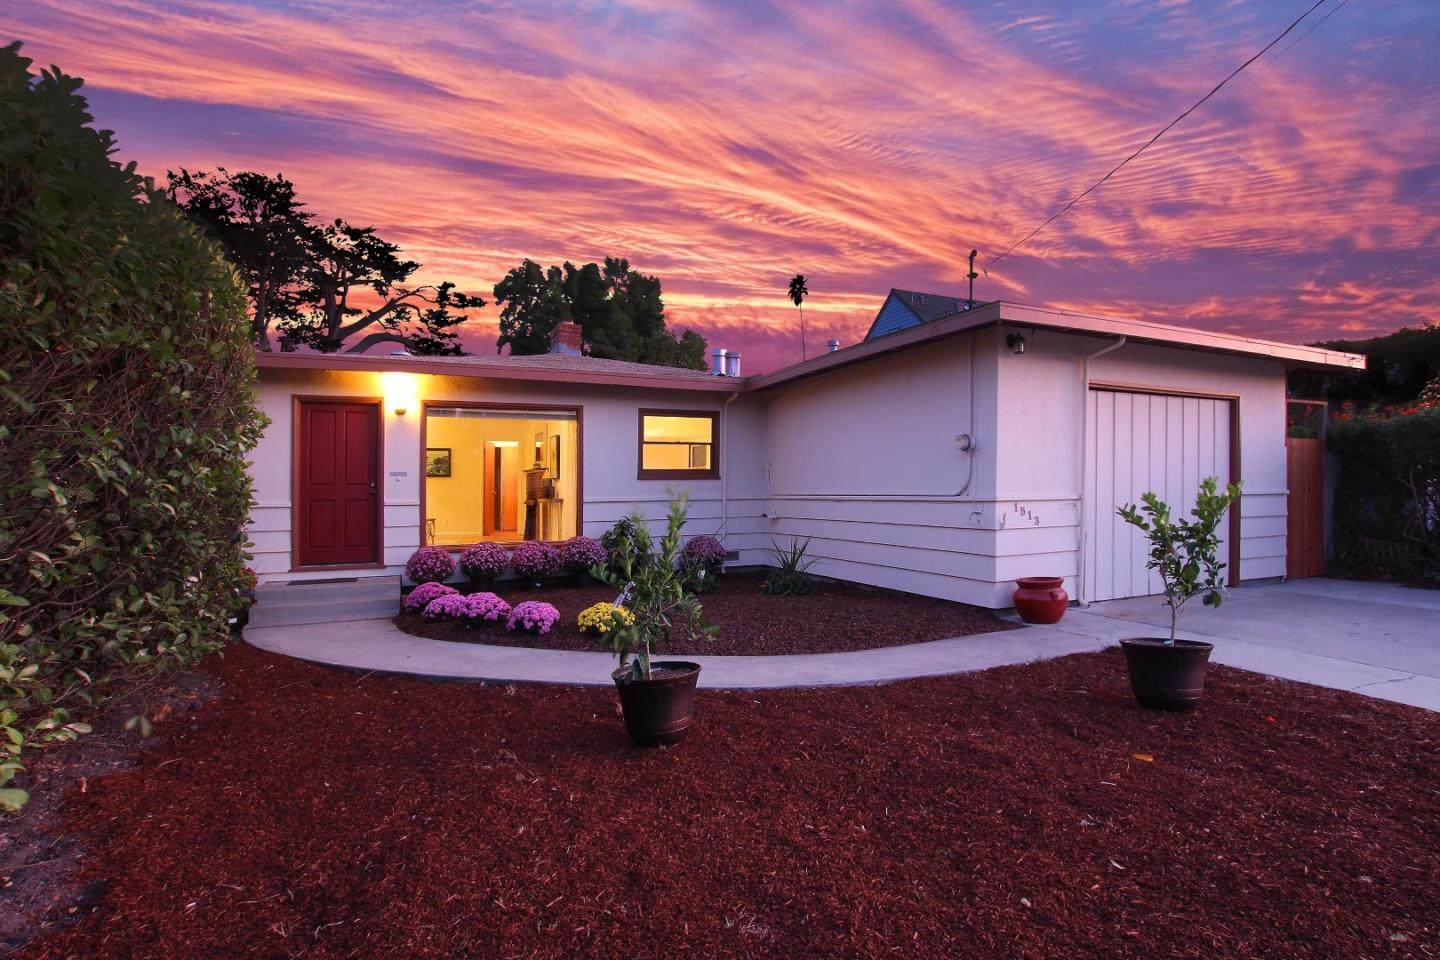 Over 5% price reduction. Seller will credit $5000 toward repairs/upgrades. This home's prime location is just blocks from the West Cliff Promenade and doors away from the Bethany Curve trail to the ocean cliffs. The house has been completely painted in and out, and features hardwood floors, a fully remodeled bathroom, and original retro tile in the other bathroom and in the kitchen. The over-sized picture window in front awaits your decorative coverings and brings light in a from a the front yard. The back yard runs deep. Zoned R2 this is an exceptional opportunity for an investment rental, a primary residence, or as a coastal retreat with half the home rented. Pears and a prominent Magnolia grace the backyard, and a private wrap-around deck gives peaceful access to the yard. The master suite has both a slider to the outside and a separate door to a private entrance, and a door to the rest of the home. The property was used as a second residence and as a rental for the past 20 years